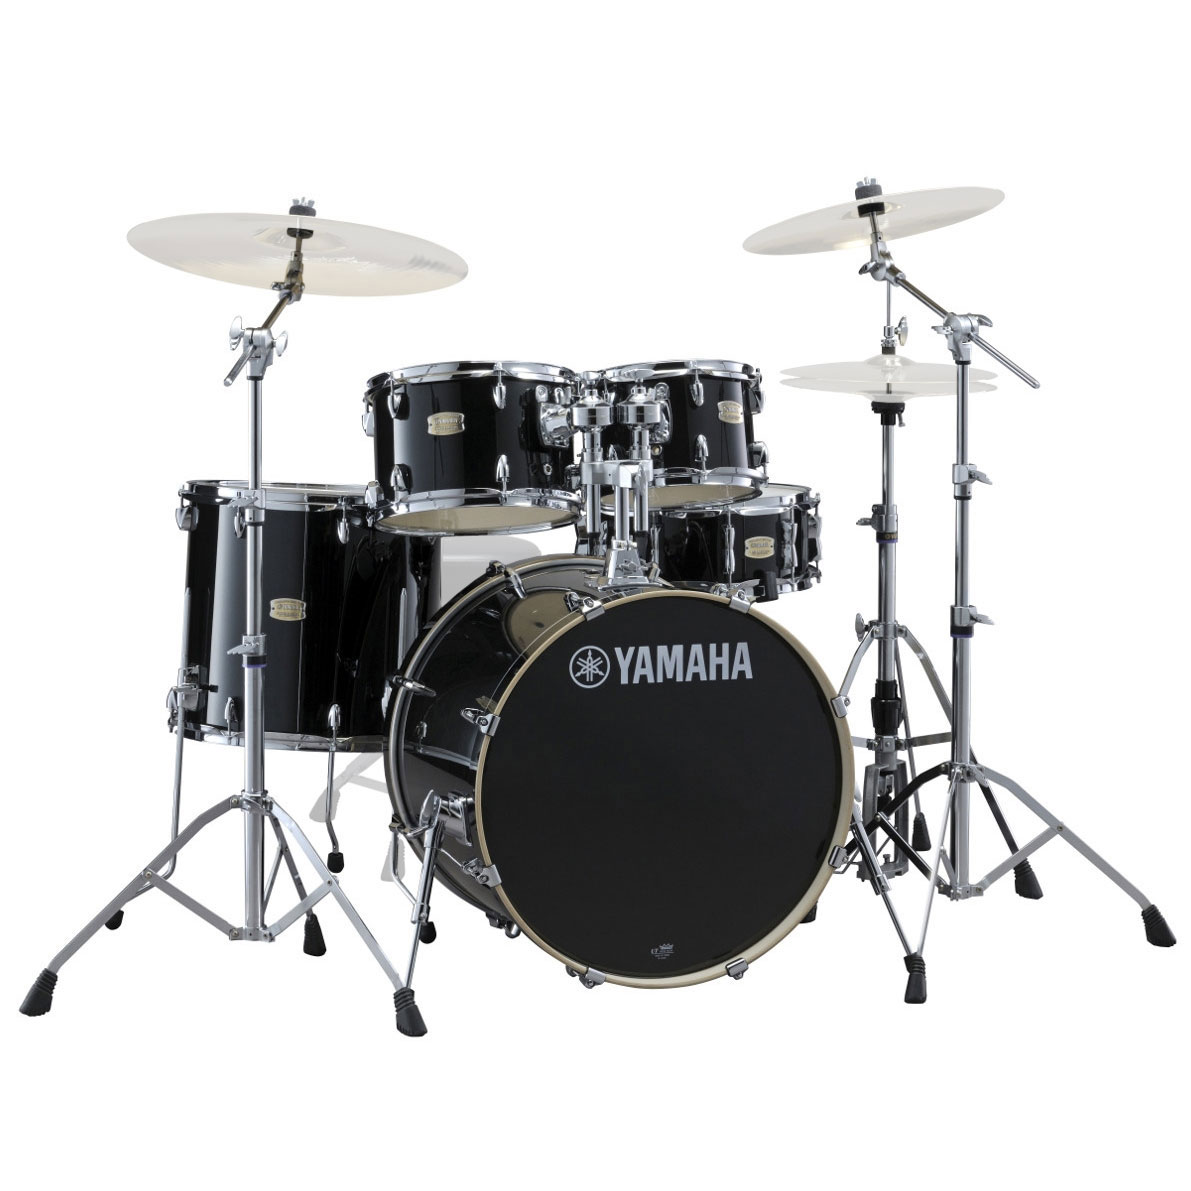 "Yamaha Stage Custom 5-Piece Rock Drum Set with HW-680W Hardware Pack (22"" Bass, 10/12/16"" Toms, 14"" Snare)"